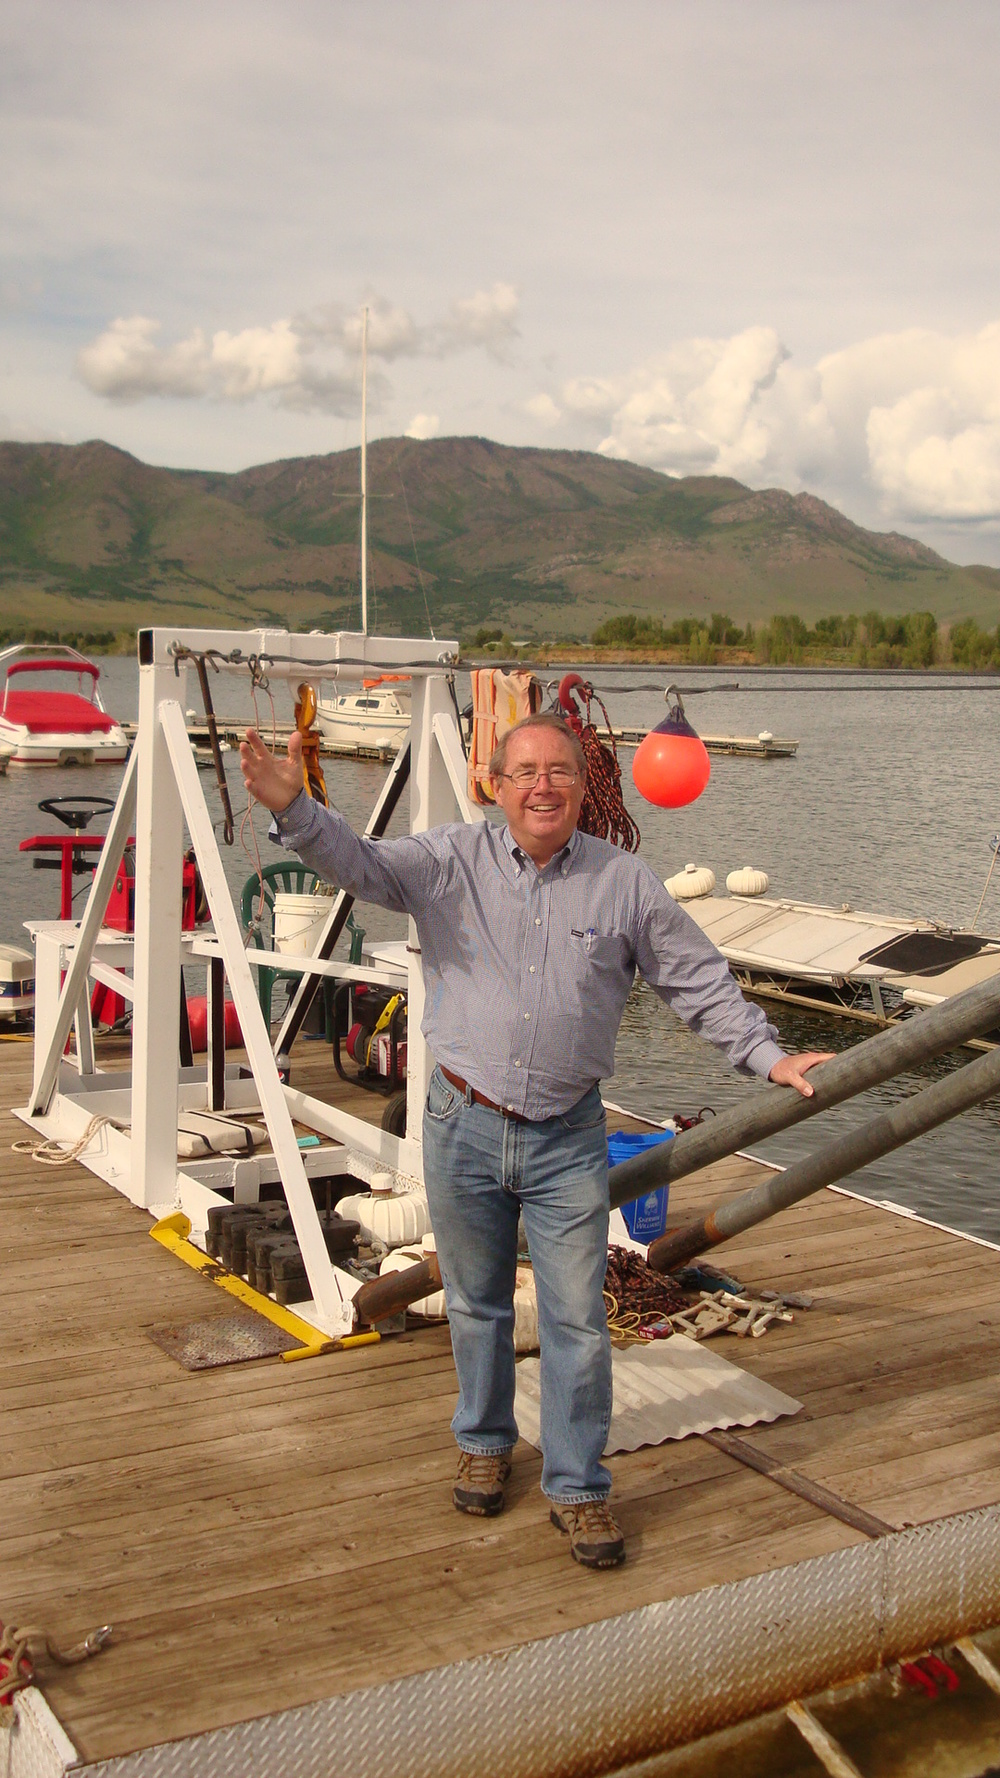 Dick Kemp, Port Marina, Pineview Reservoir, UT